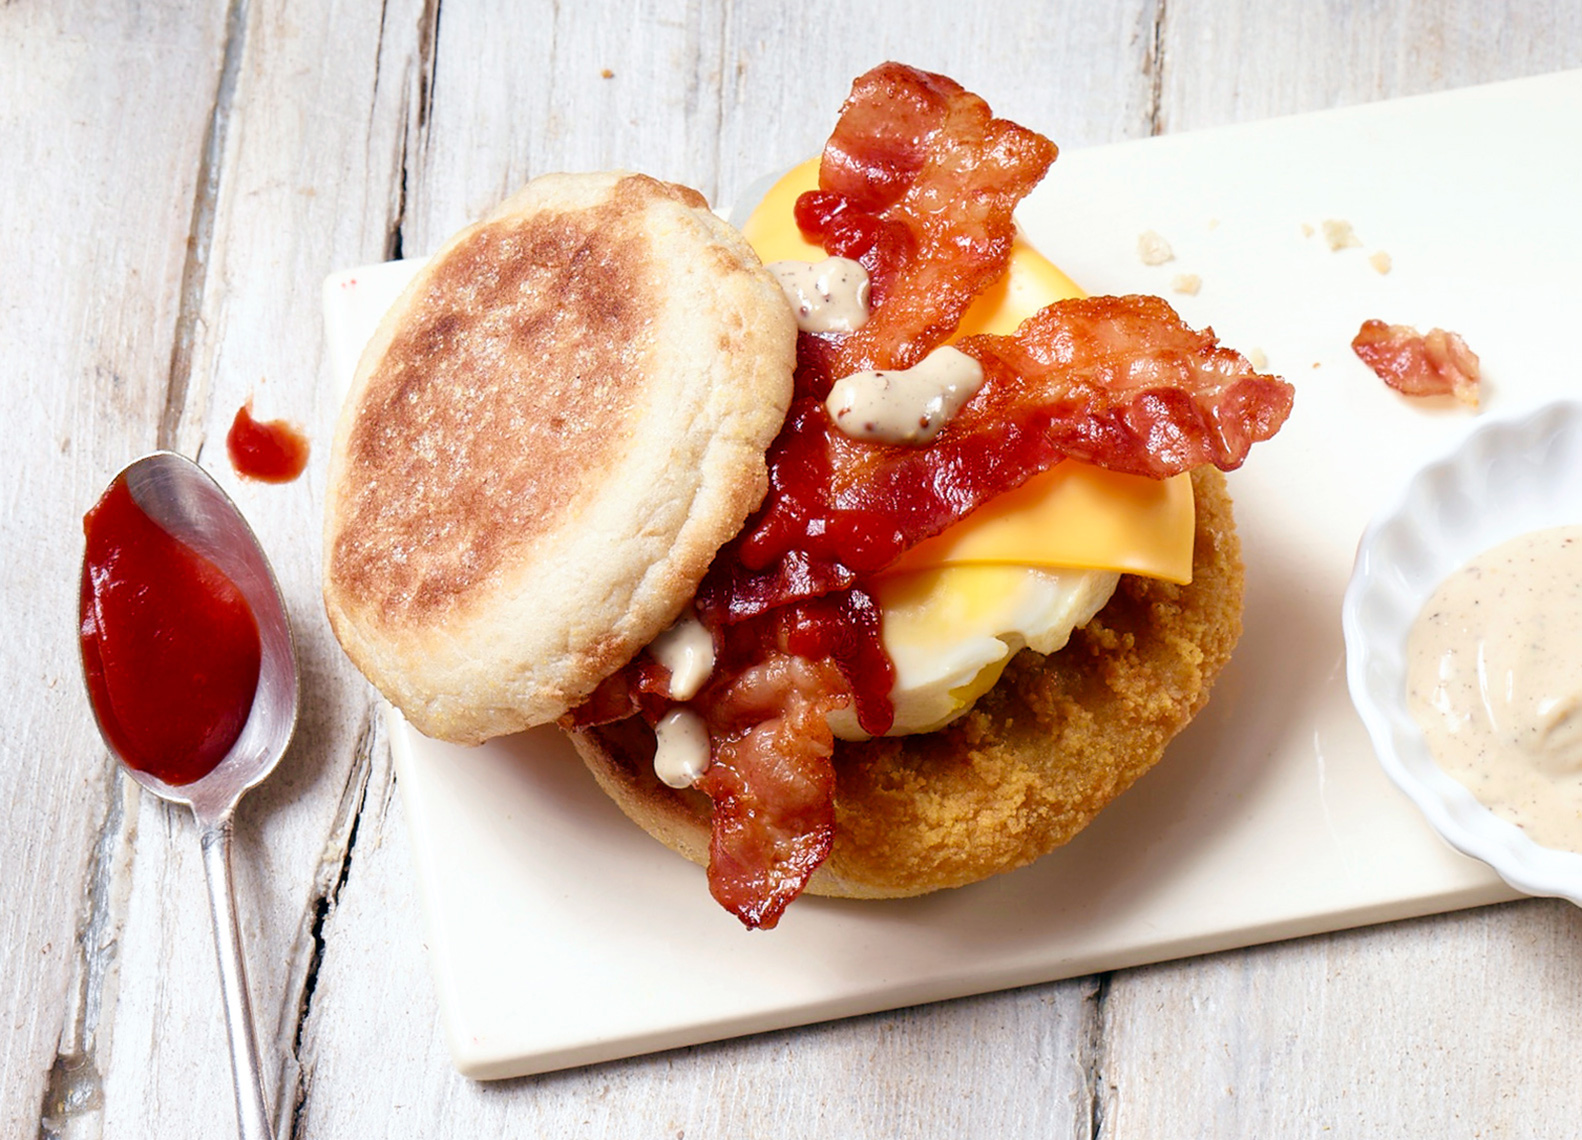 mcdonalds-mc-muffin-chicken-bacon--foodstyling-gruenewald